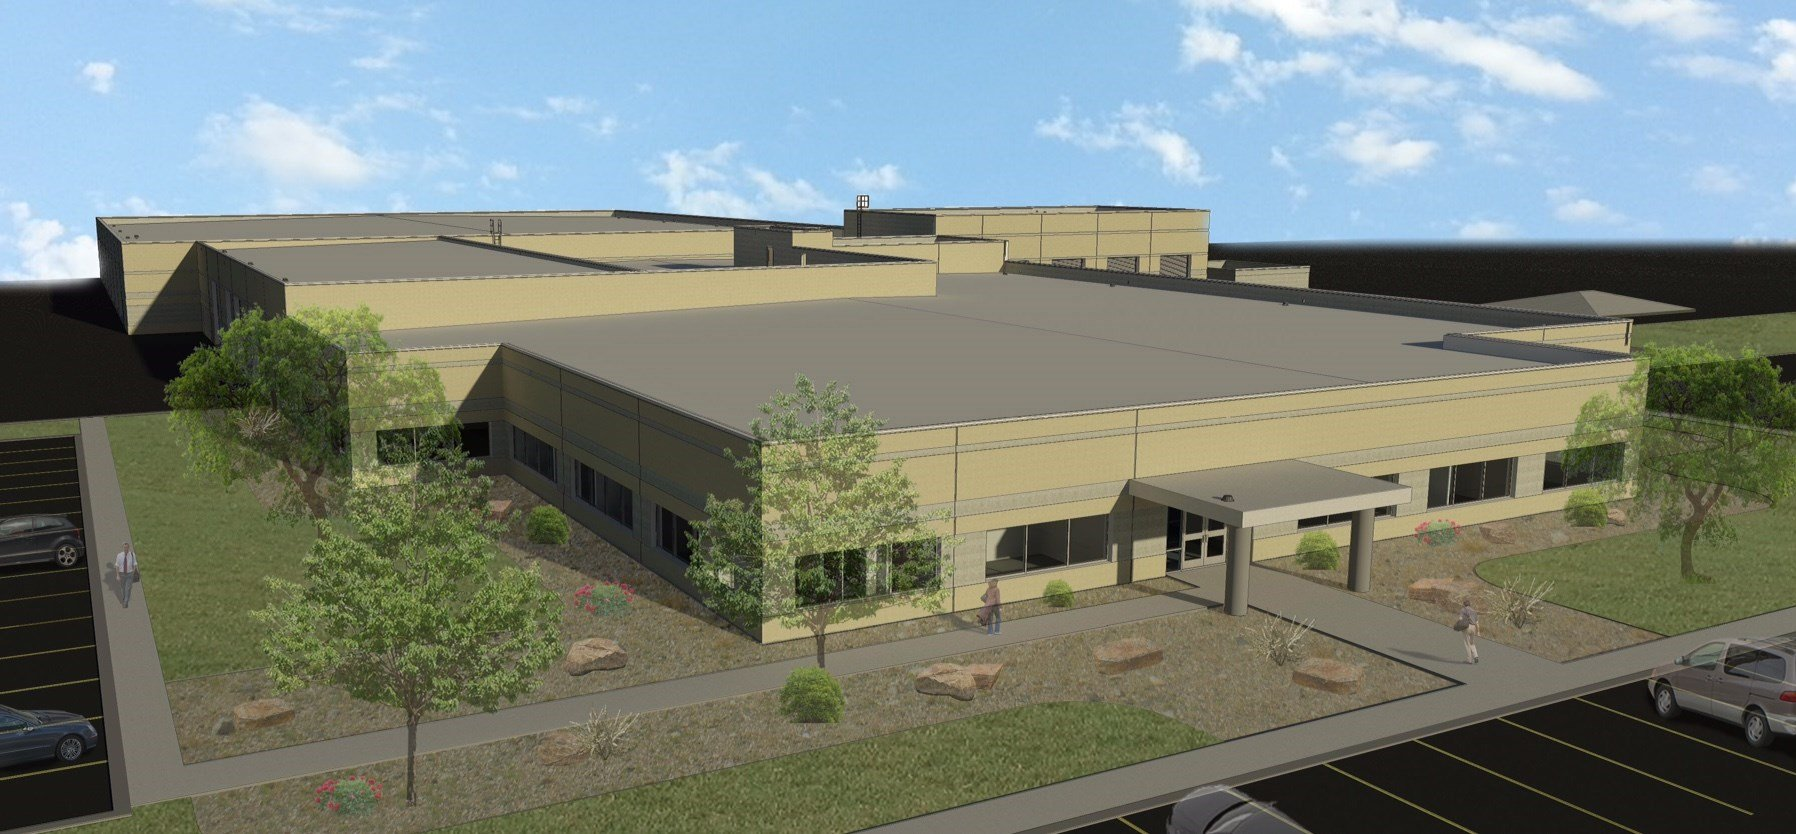 A rendering of a new AEP Texas building that is expected to be completed in September 2018. (Courtesy: AEP TEXAS)